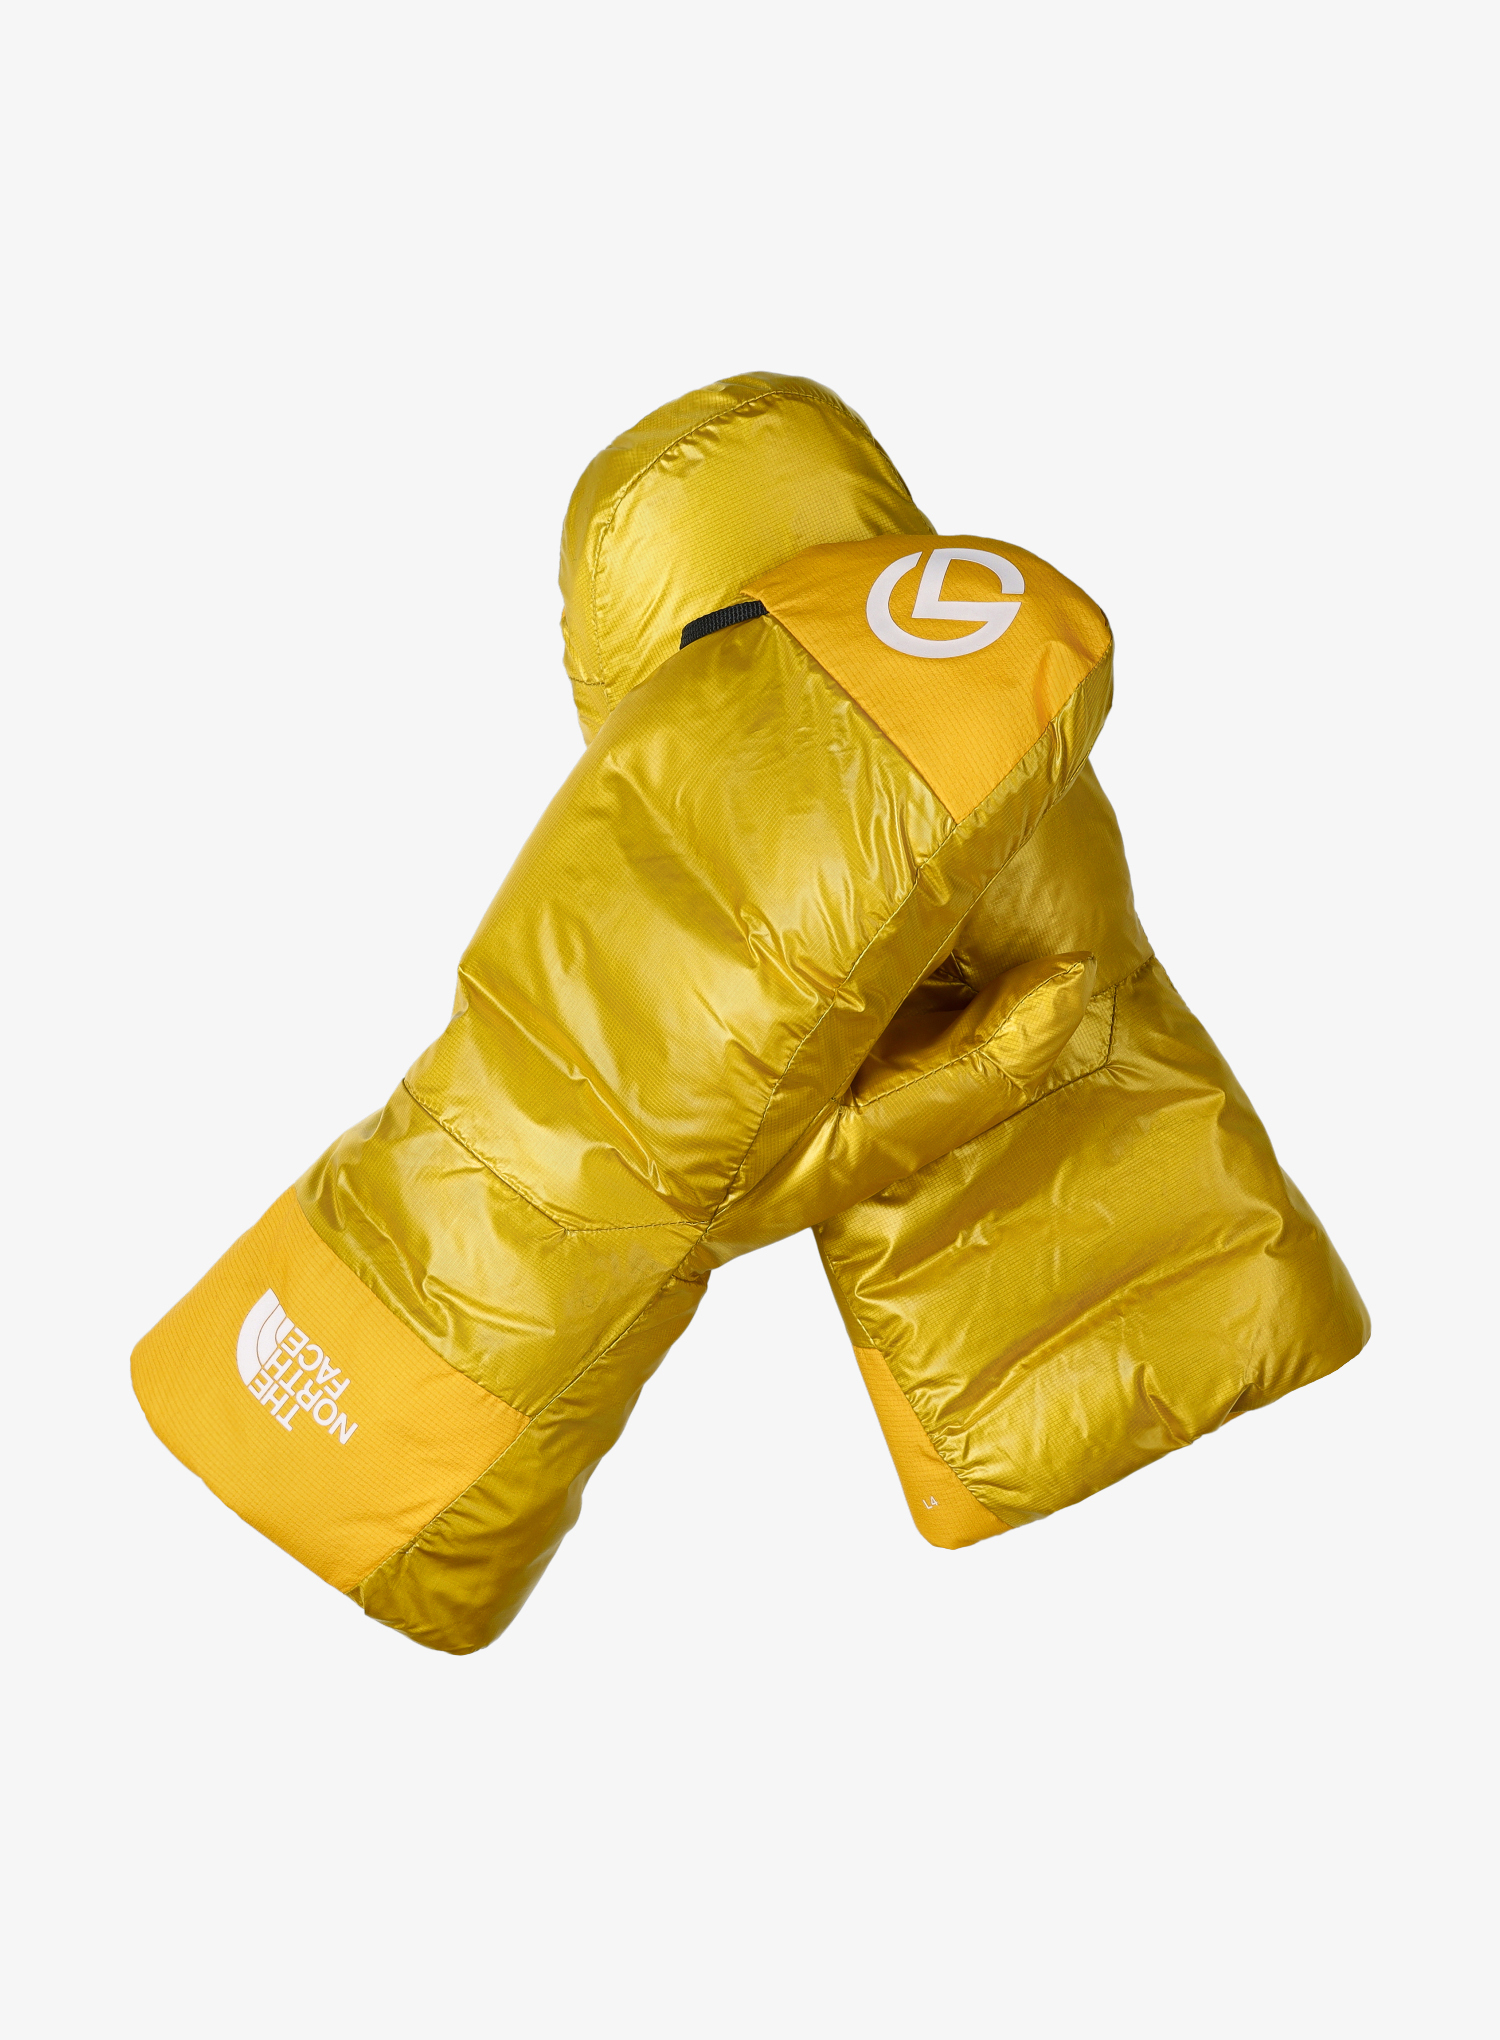 Łapawice The North Face AMK L4 Insulated Down Mitt - canarry/gold - zdjęcie nr. 1